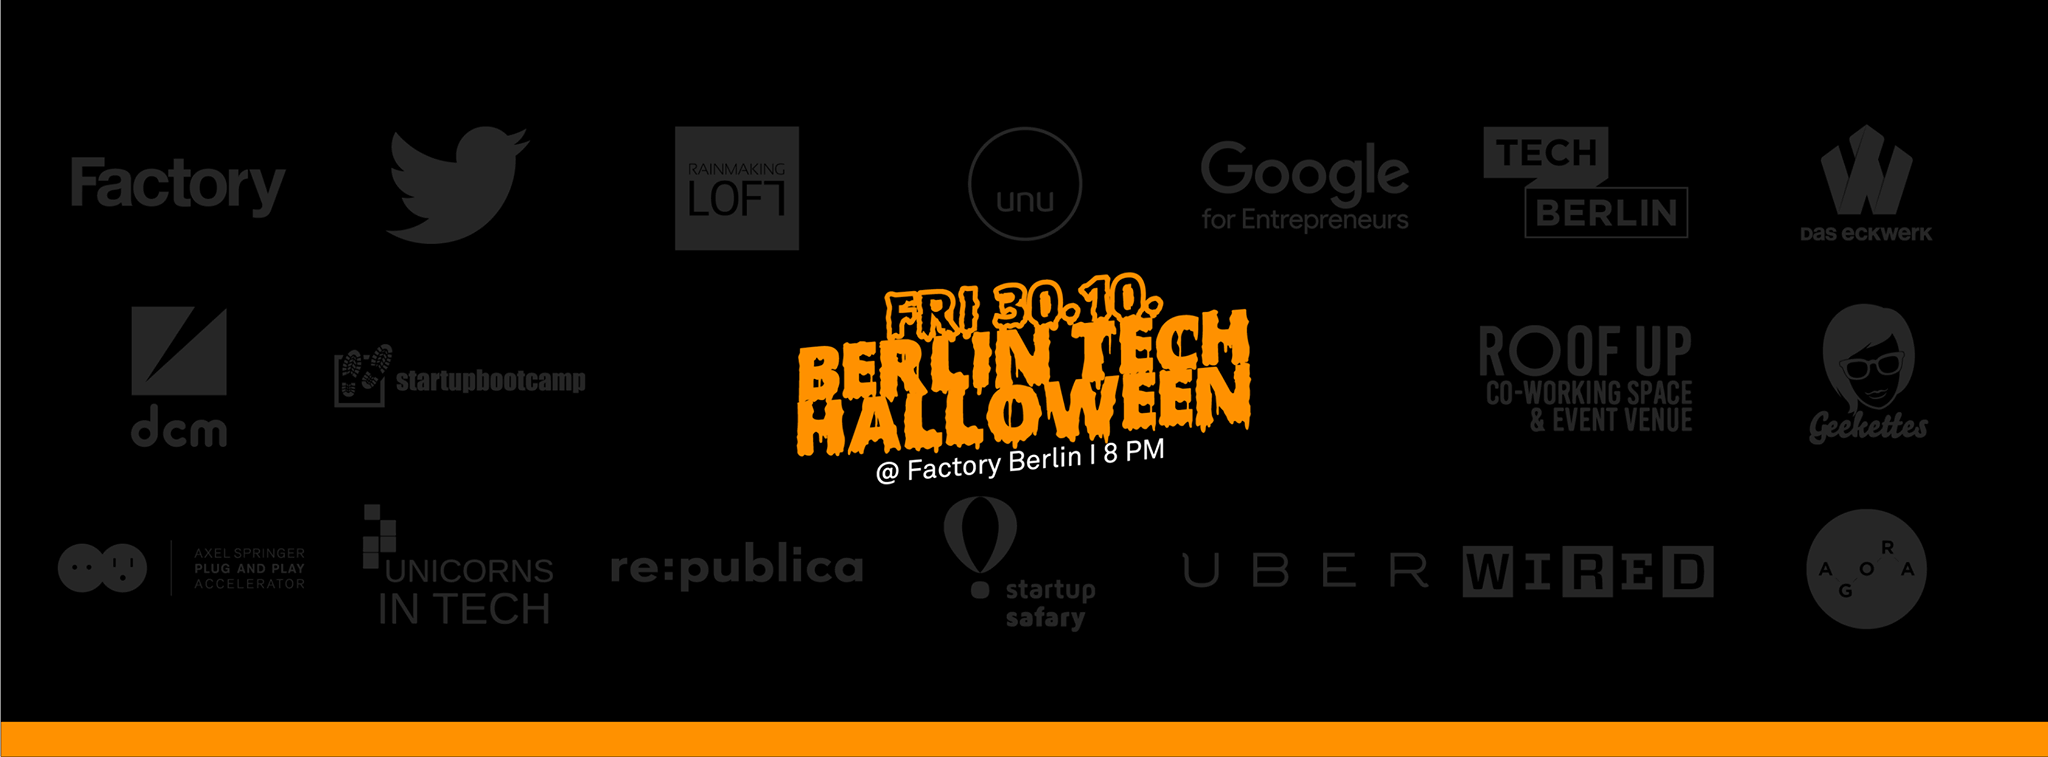 Berlin_Tech_Halloween